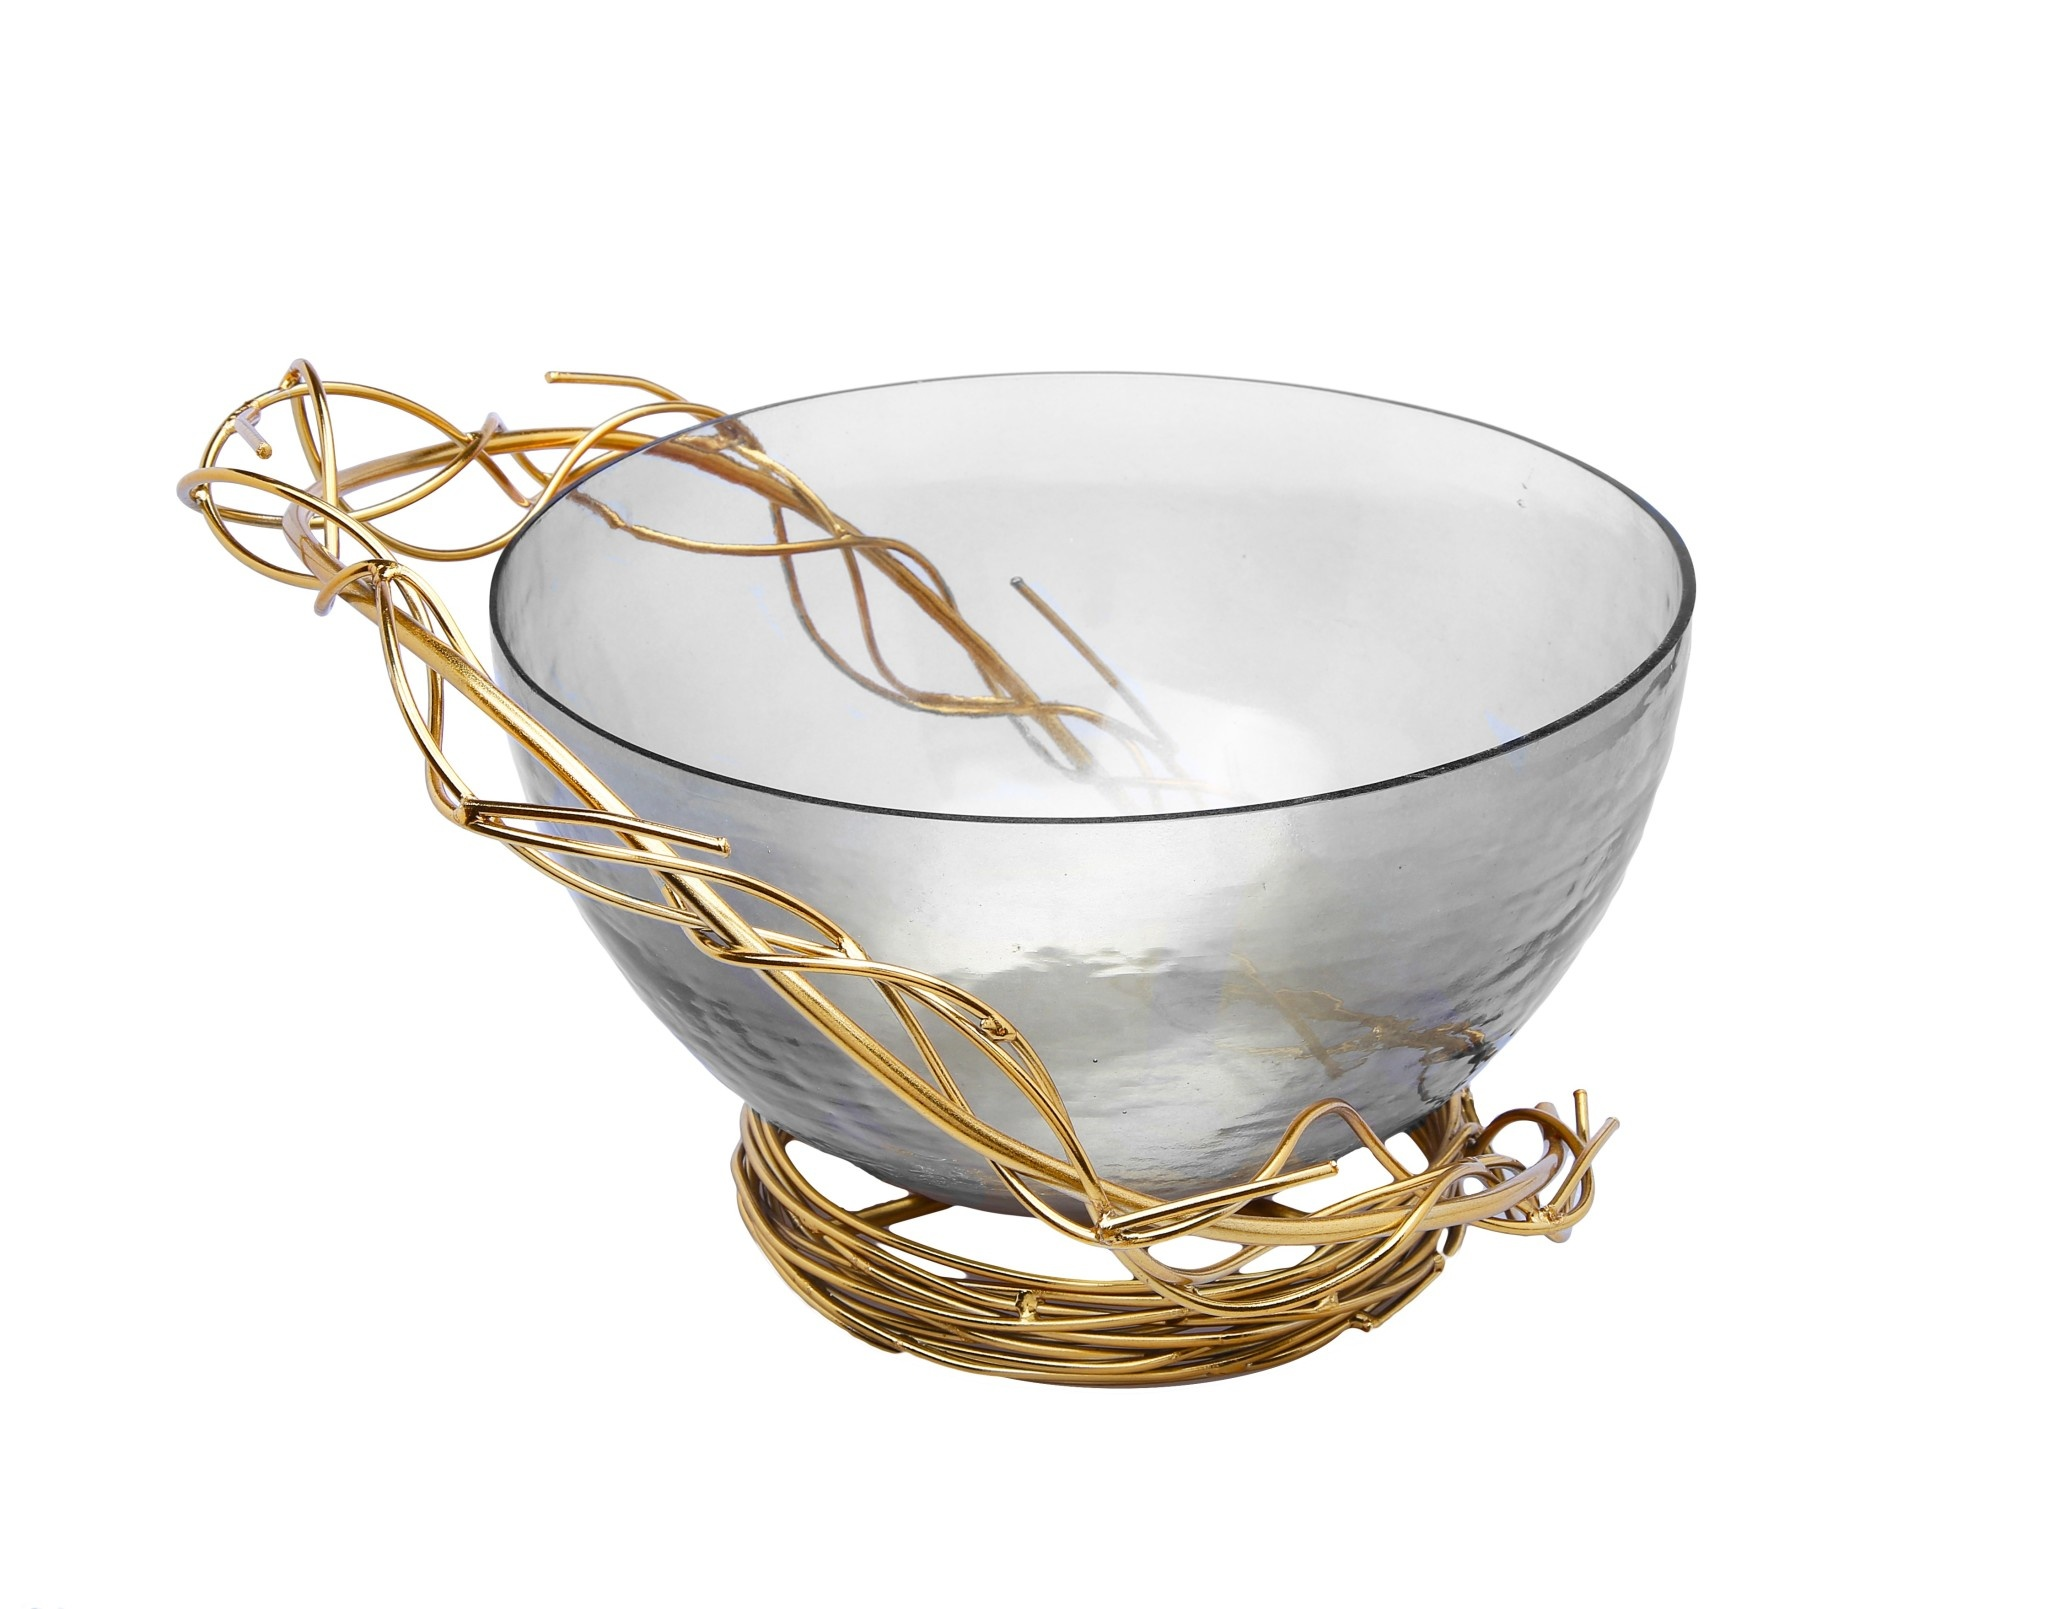 Smoked Glass Salad Bowl with Gold Twig Design